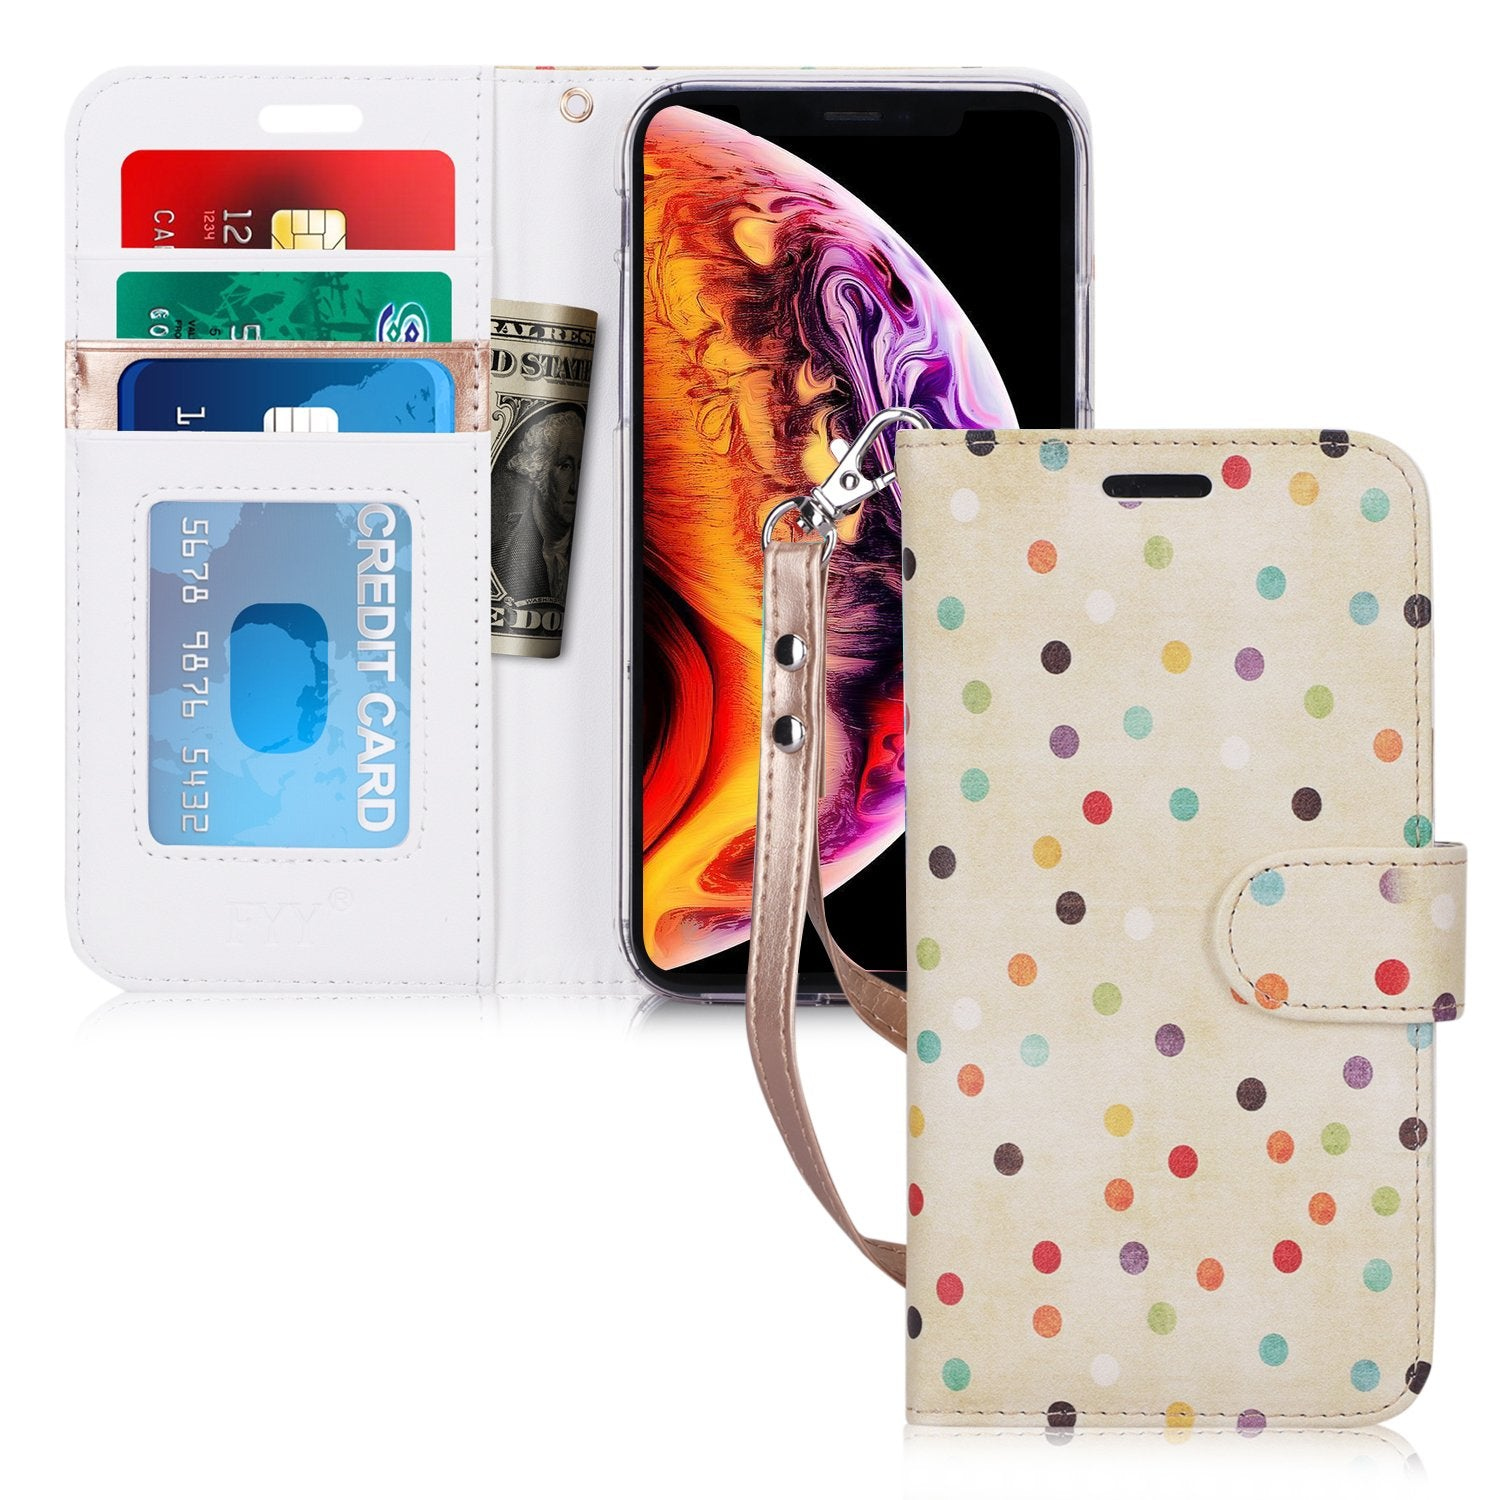 "PU Leather Wallet Case for iPhone Xr (6.1"") 2018"